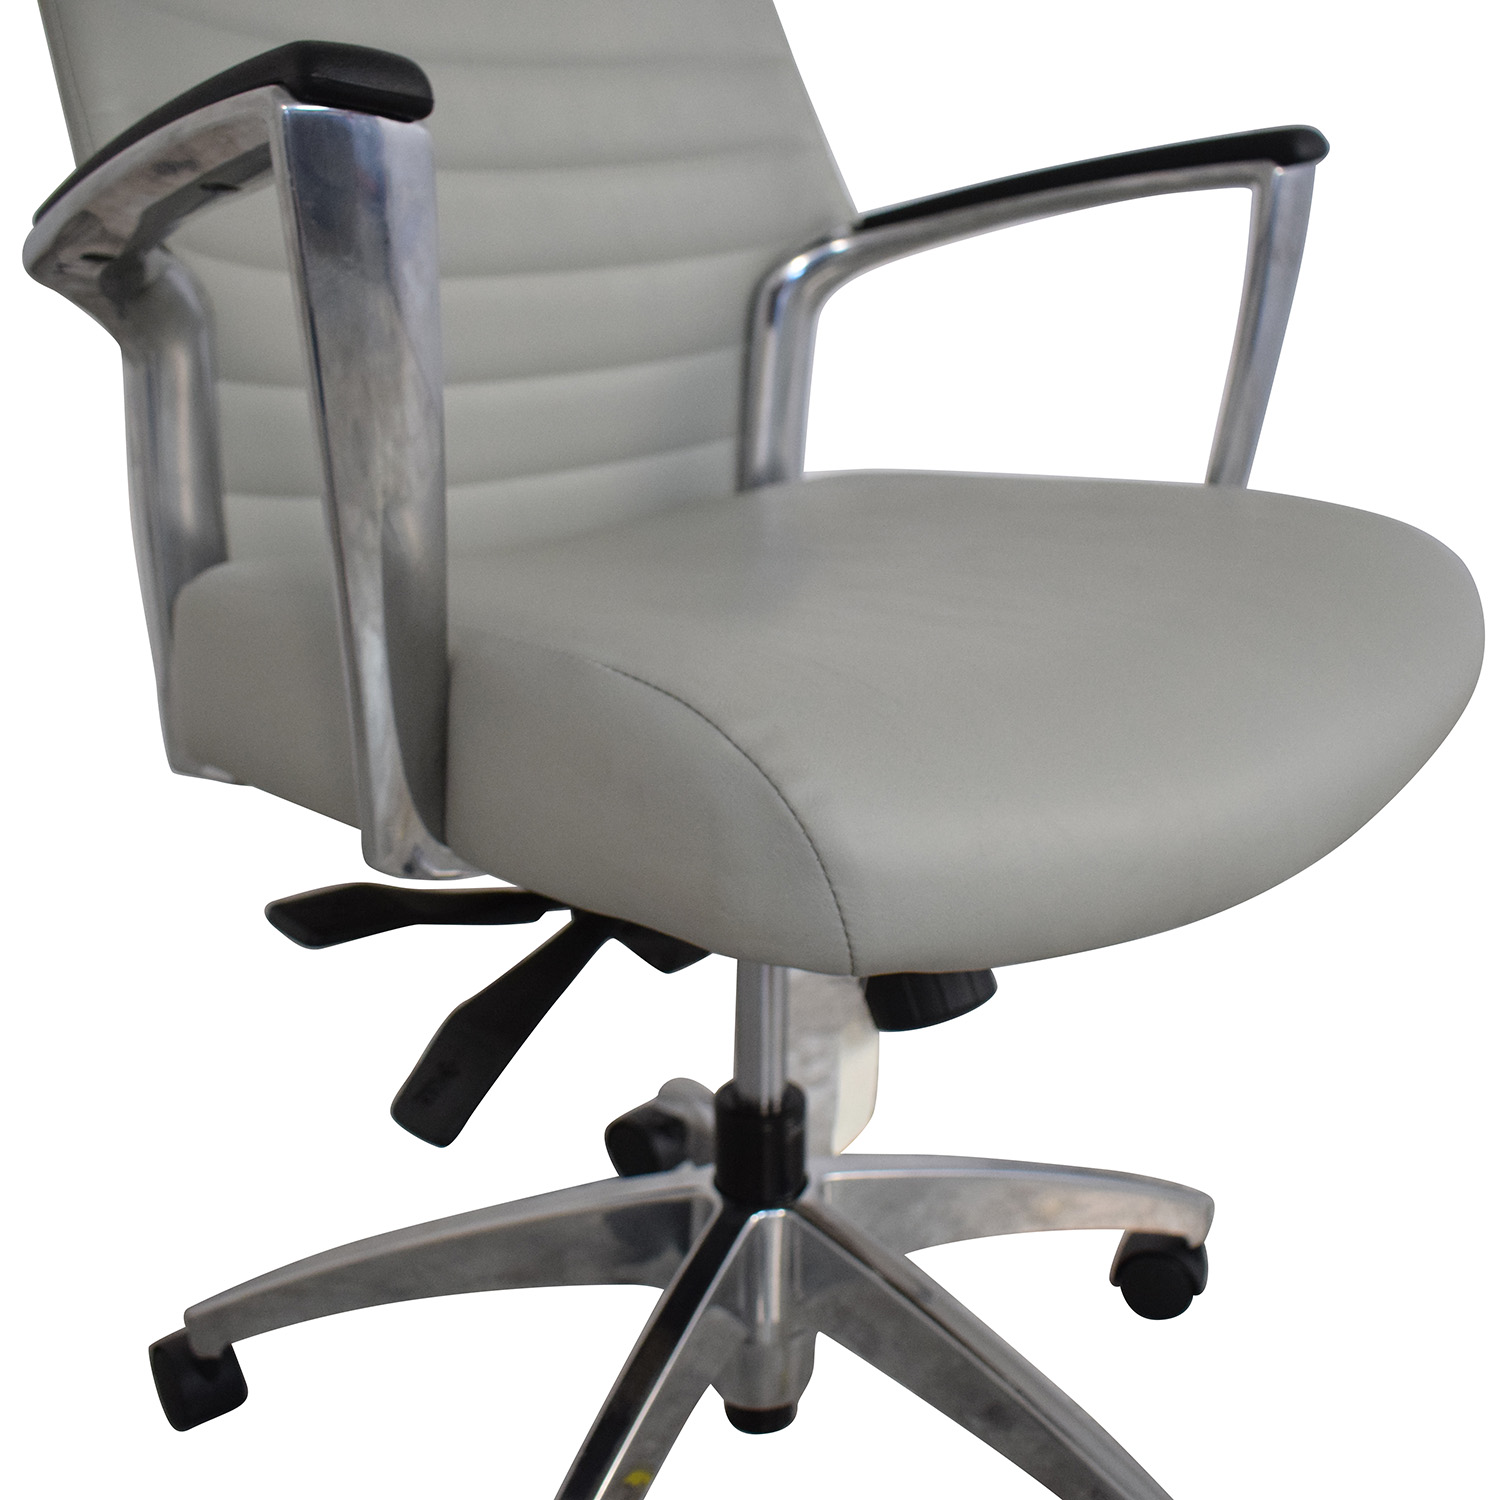 Global Global Accord Mid Back Tilter Chair grey & silver